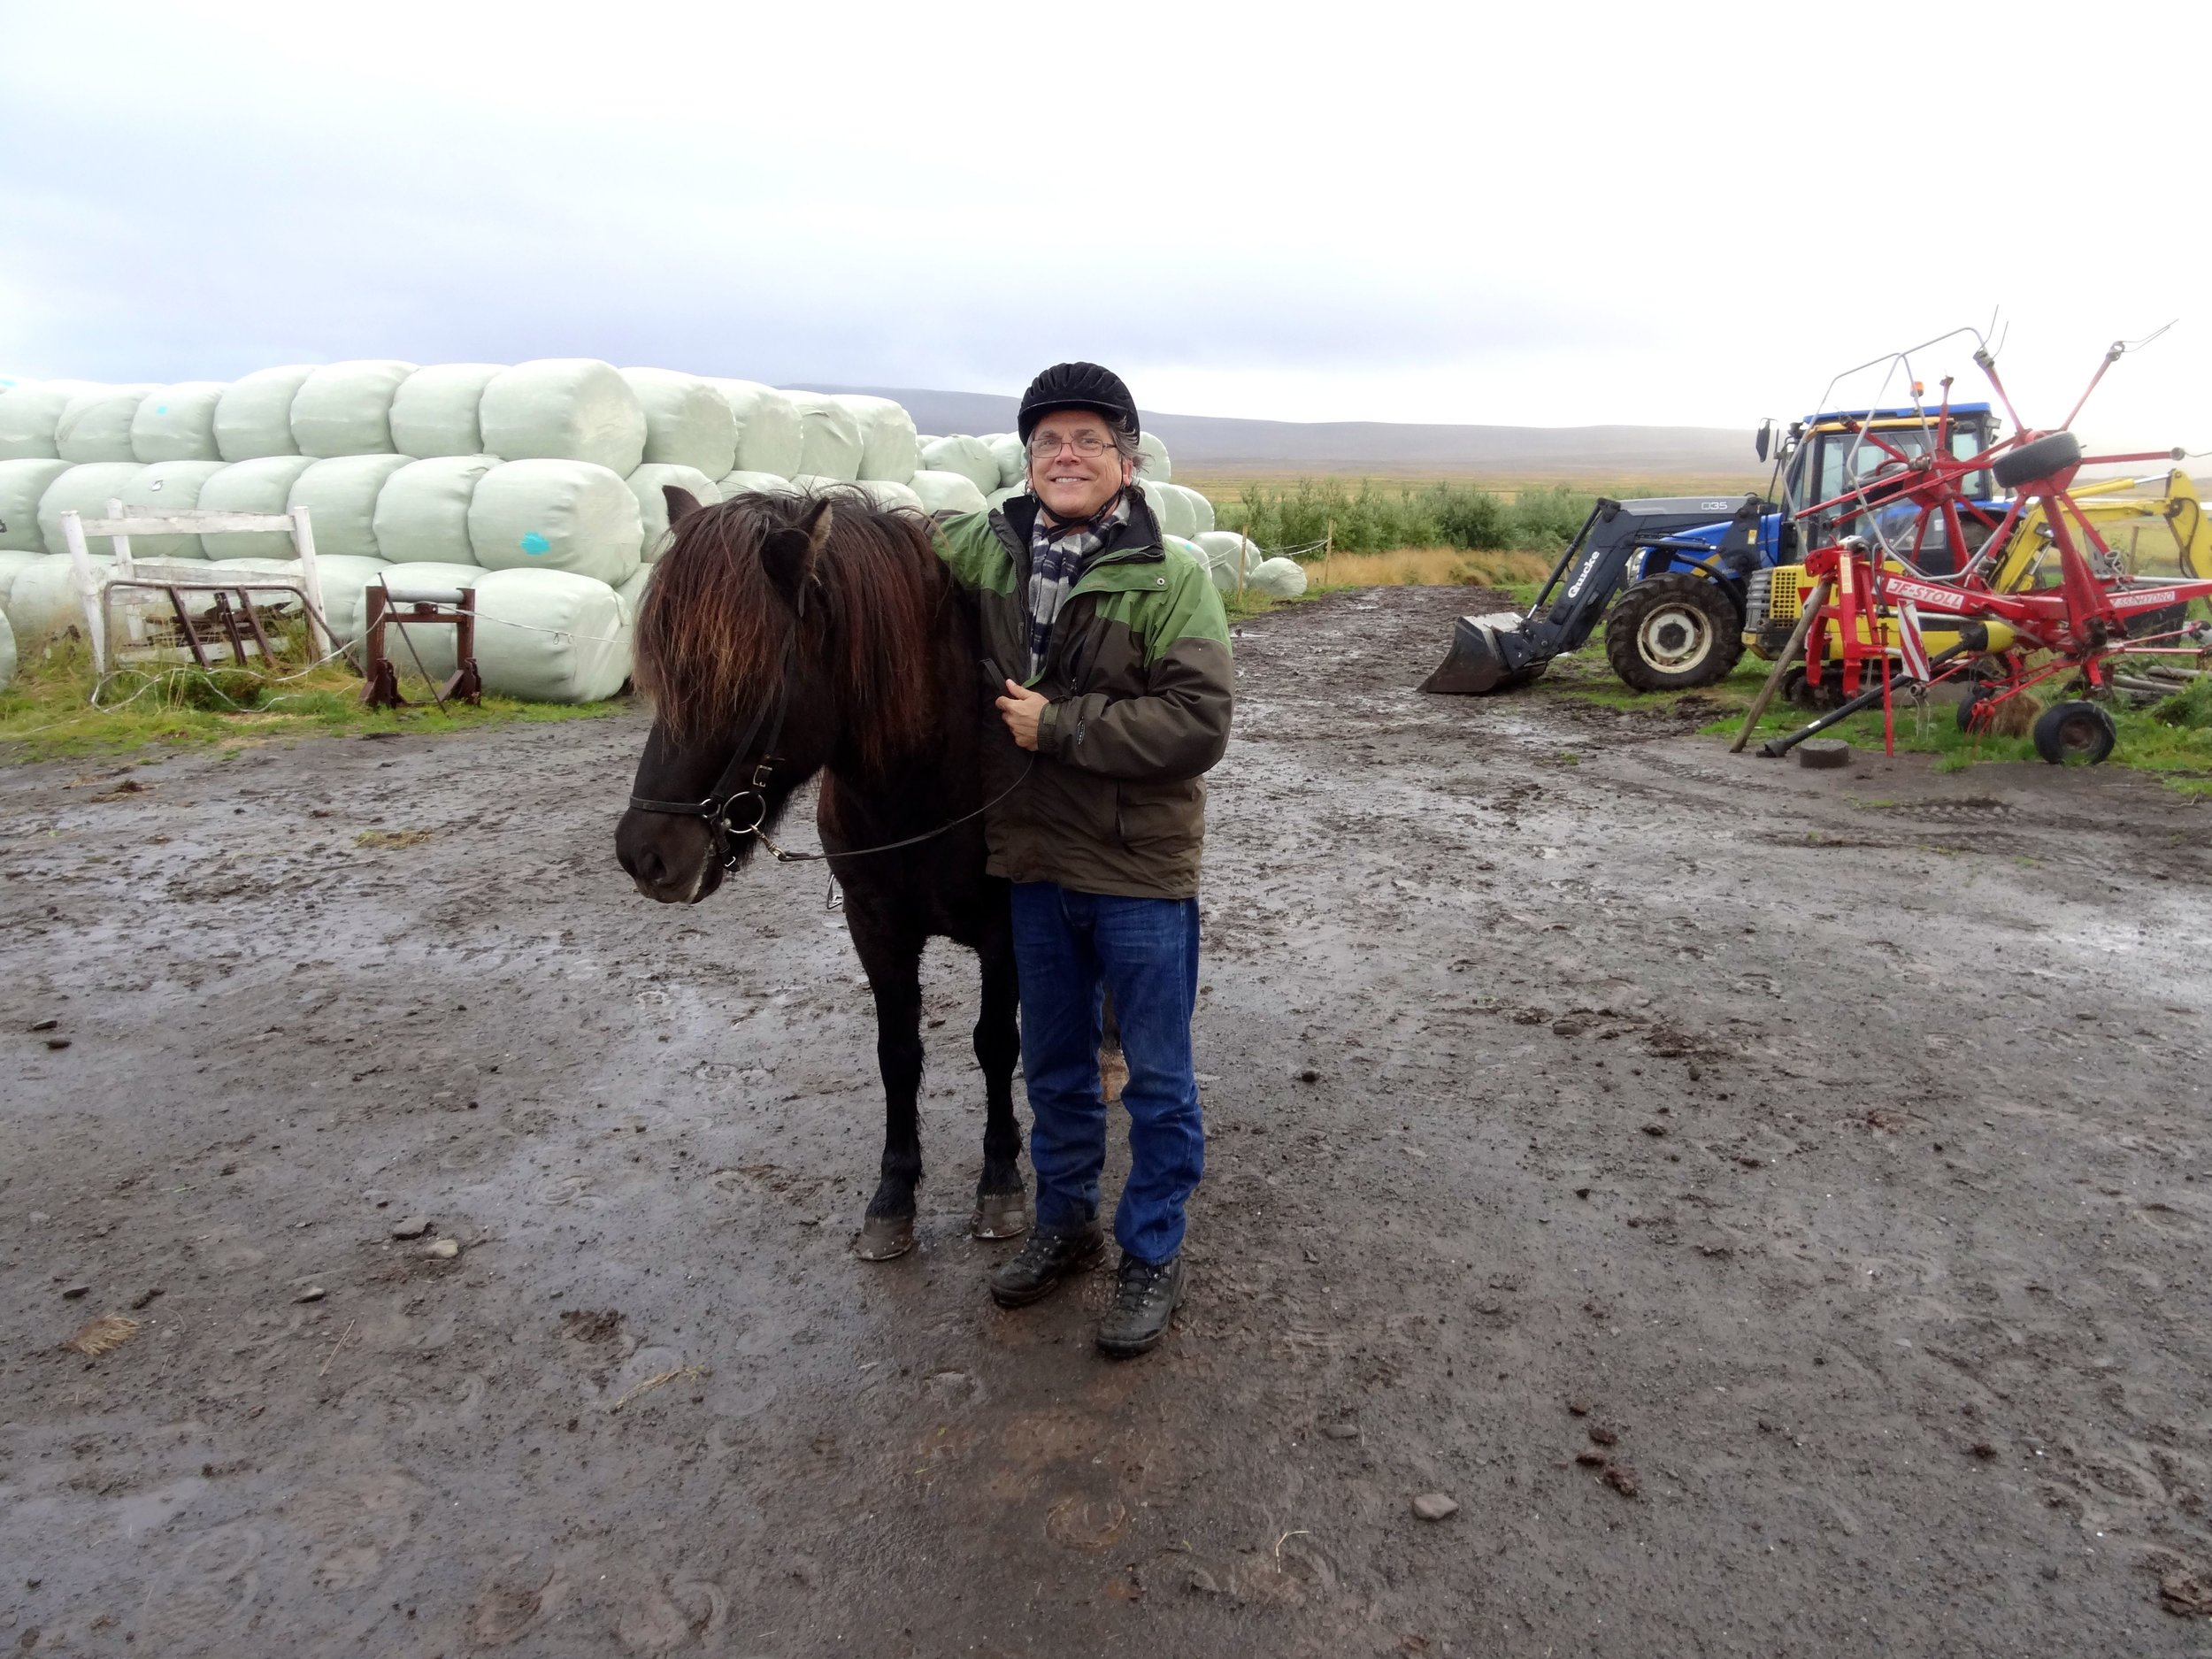 Iceland horses are small, the size of ponies. Icelandic law prevents horses from being imported into the country and exported animals are not allowed to return.